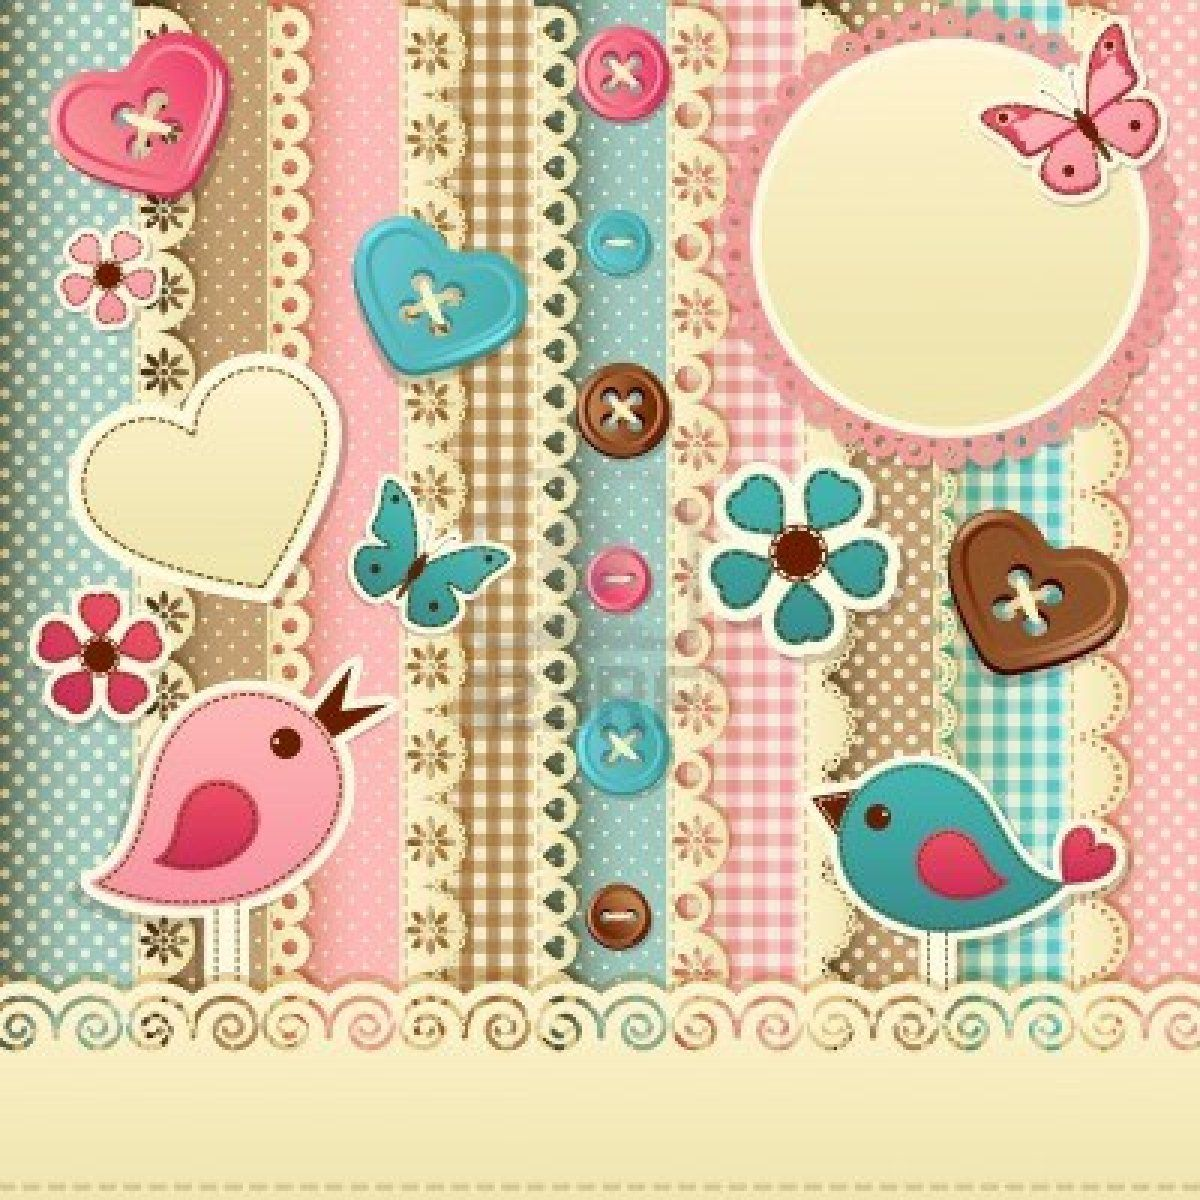 CUTE HEARTS, BUTTERFLY, BIRDS, AND BUTTONS, PRINTABLE ...